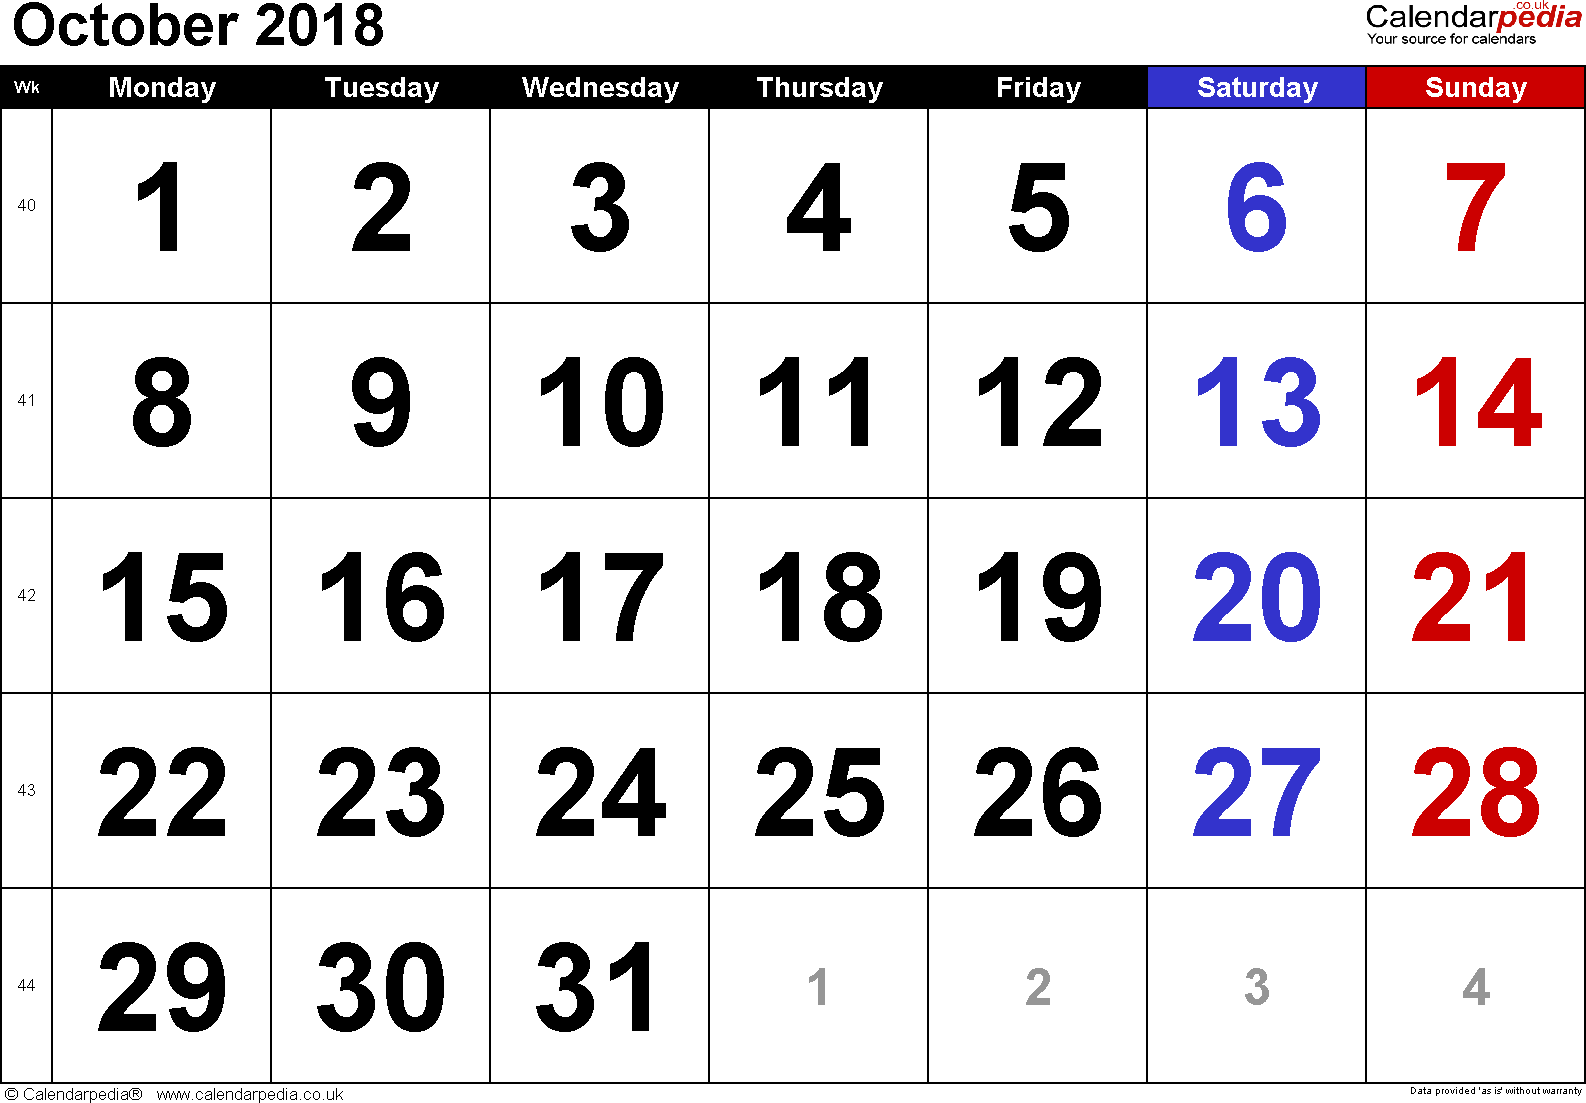 Calendar October 2018, landscape orientation, large numerals, 1 page, with UK bank holidays and week numbers